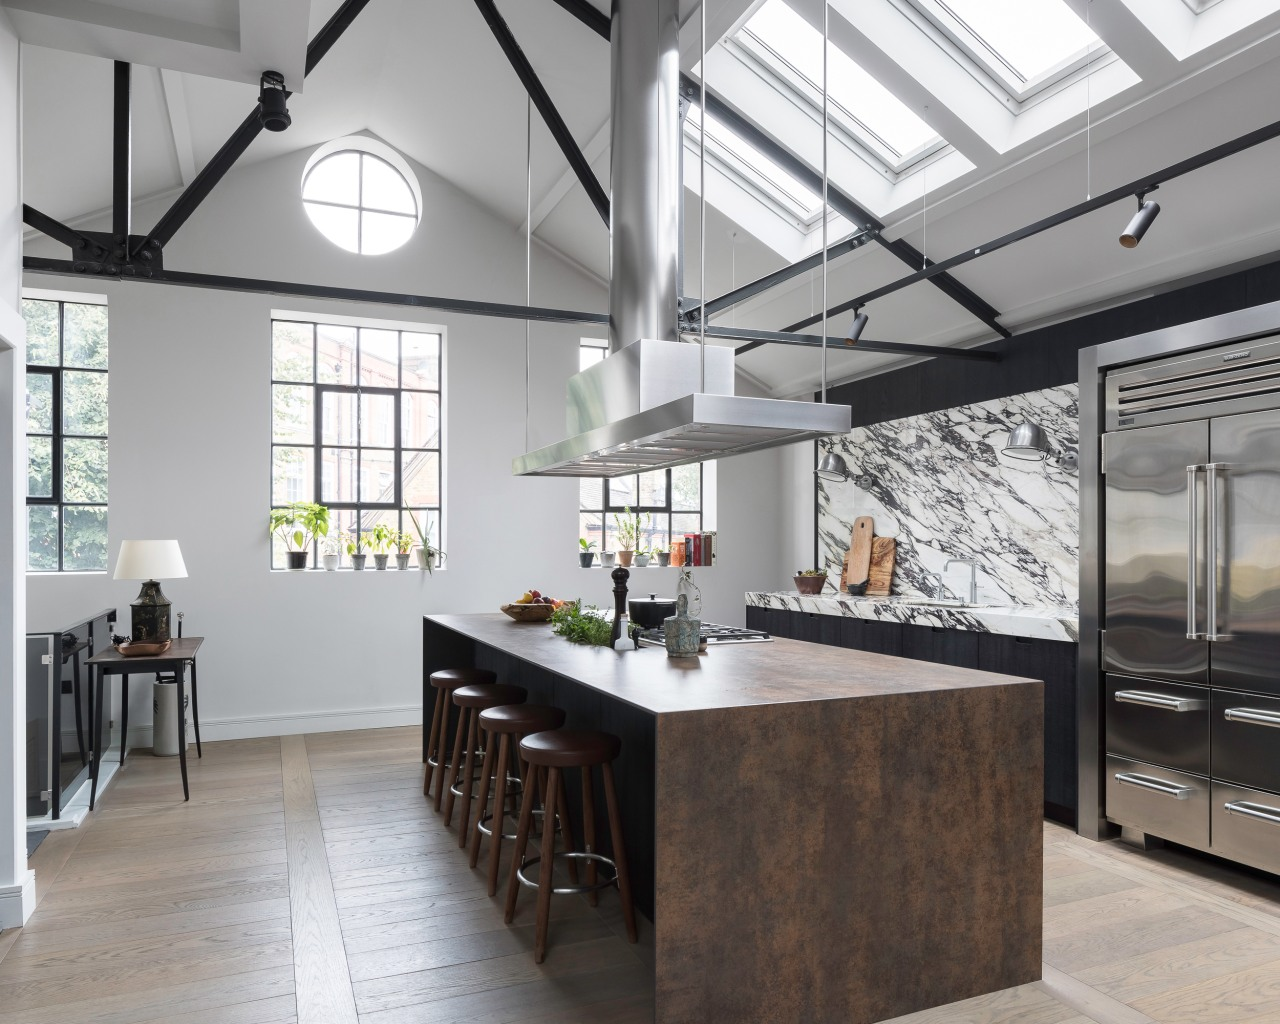 This former bacon factory's industrial environs provided the